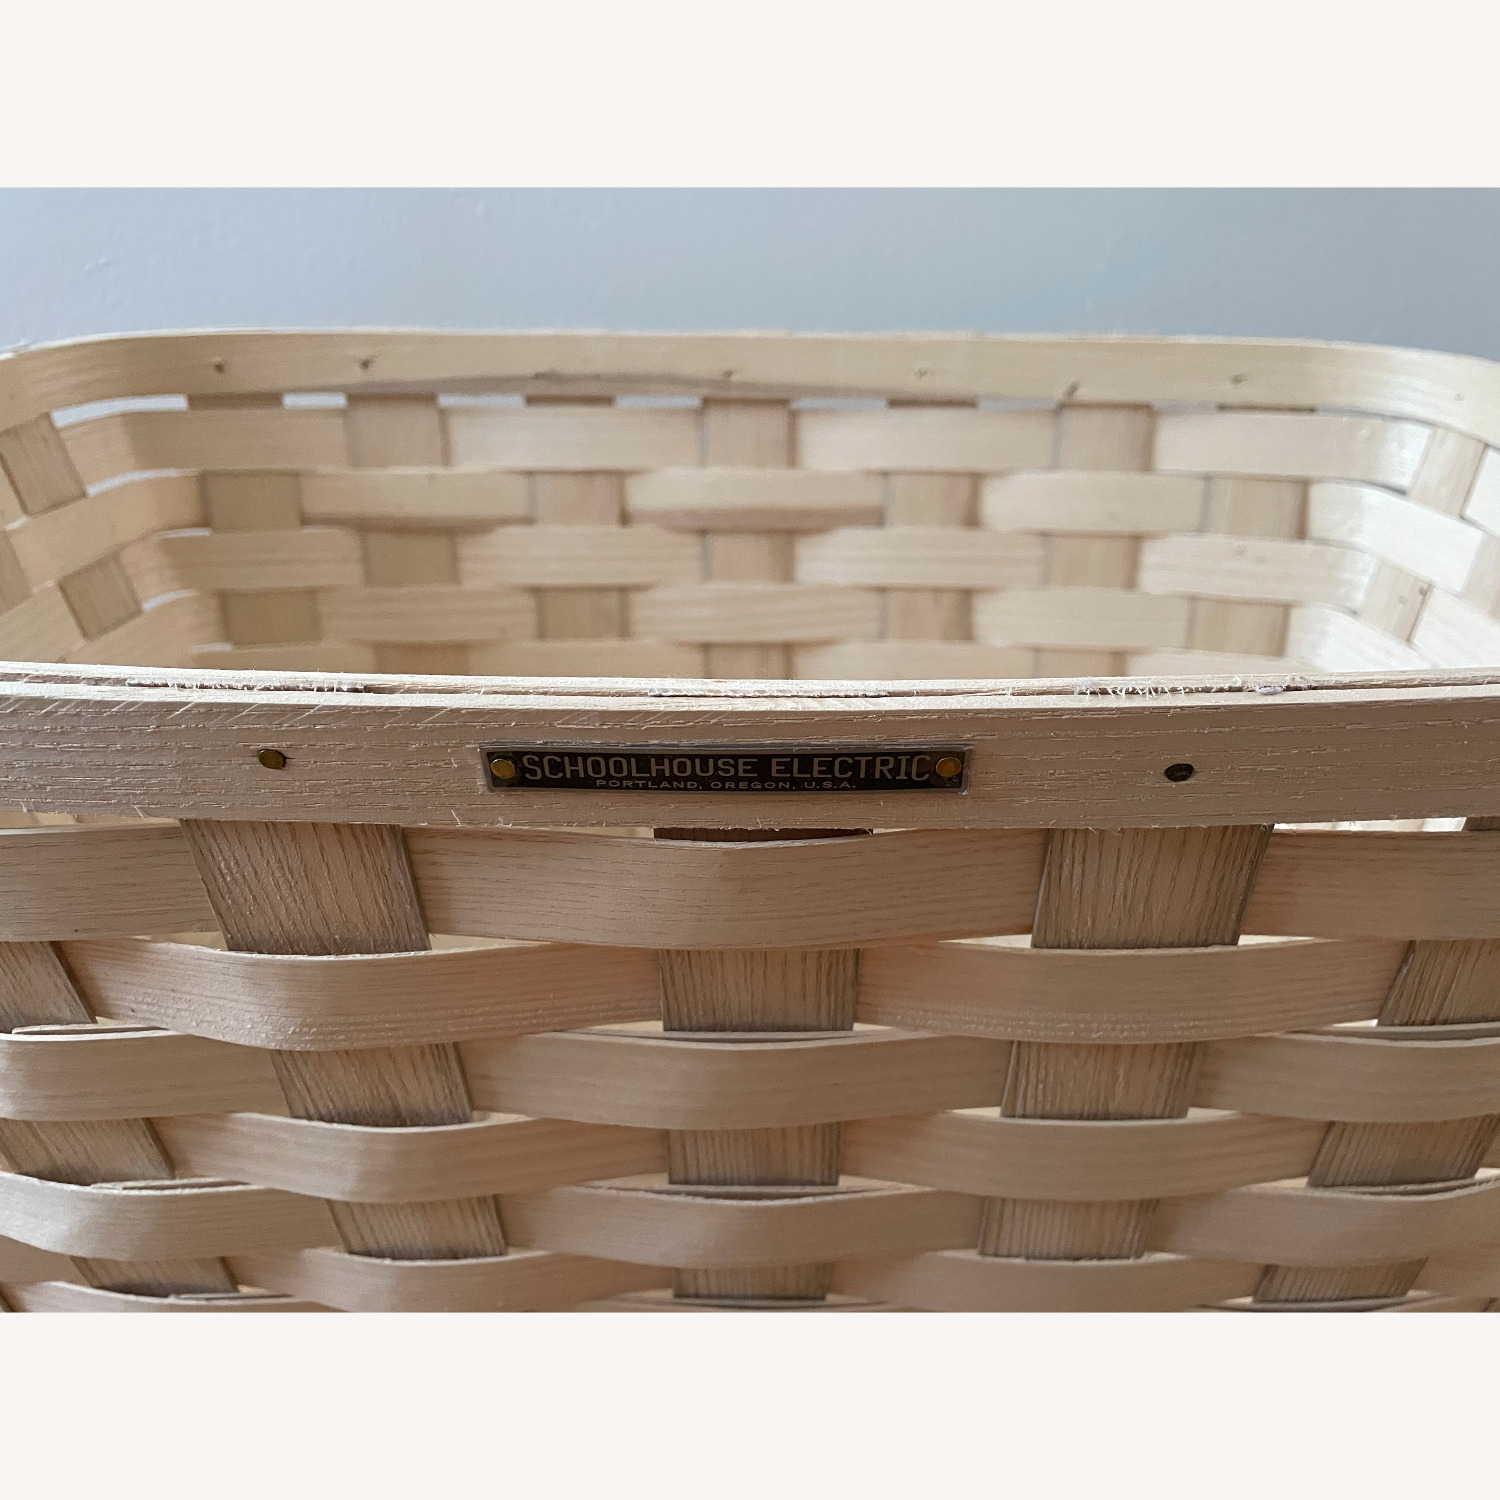 Schoolhouse Electric Lg Rectangle White Ash Basket - image-6